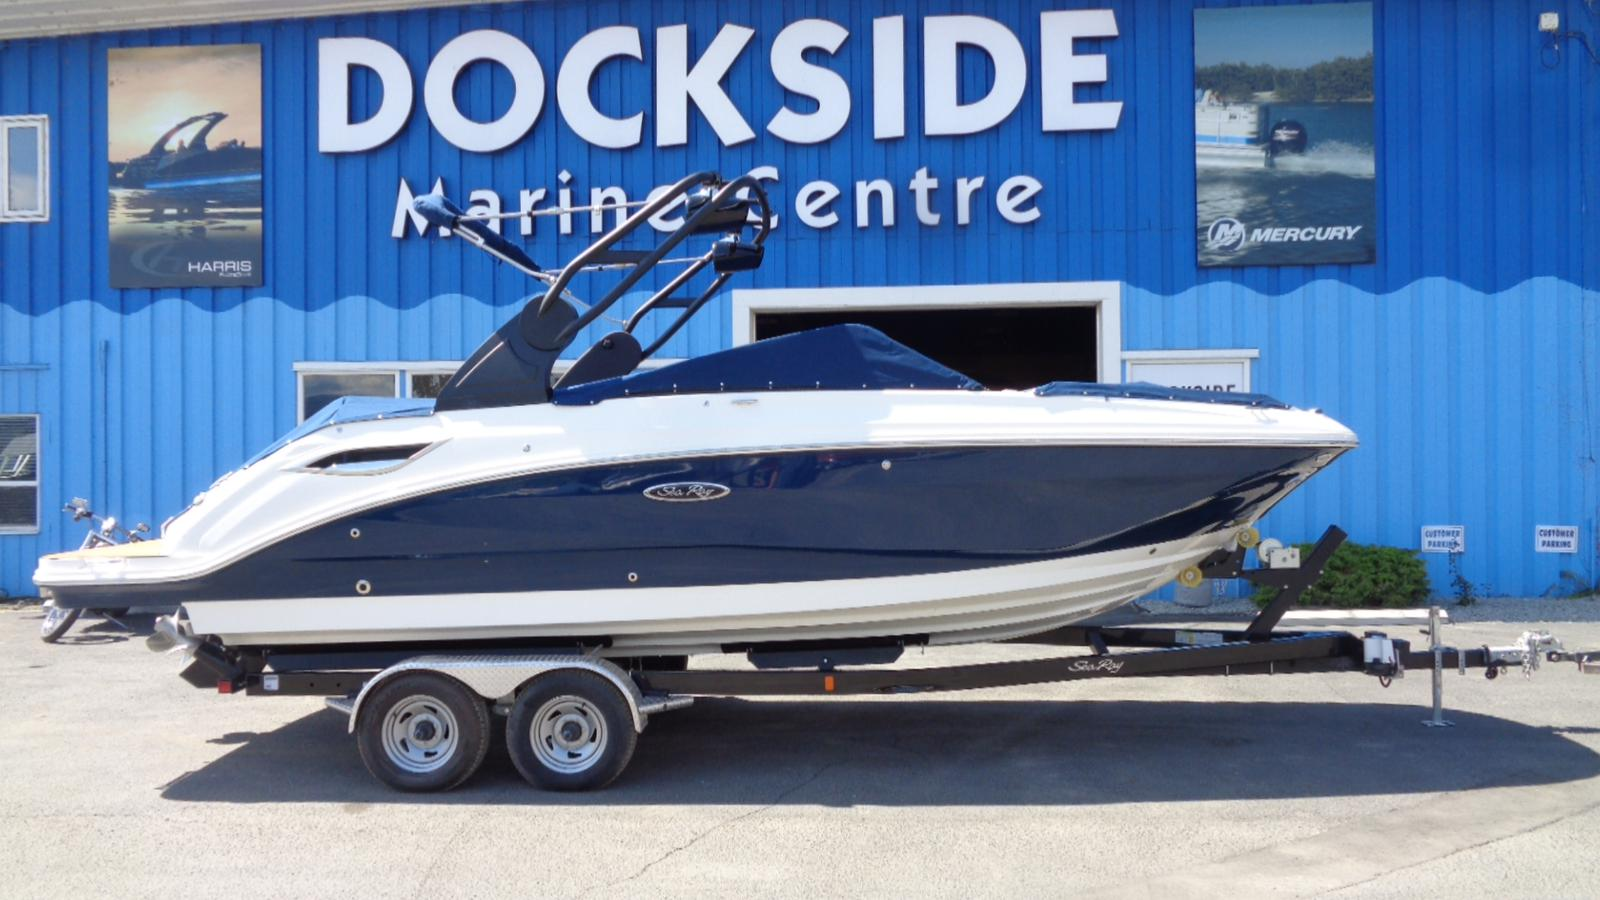 For Sale: 2018 Sea Ray Sdx 250 26ft<br/>Dockside Marine Centre, LTD.